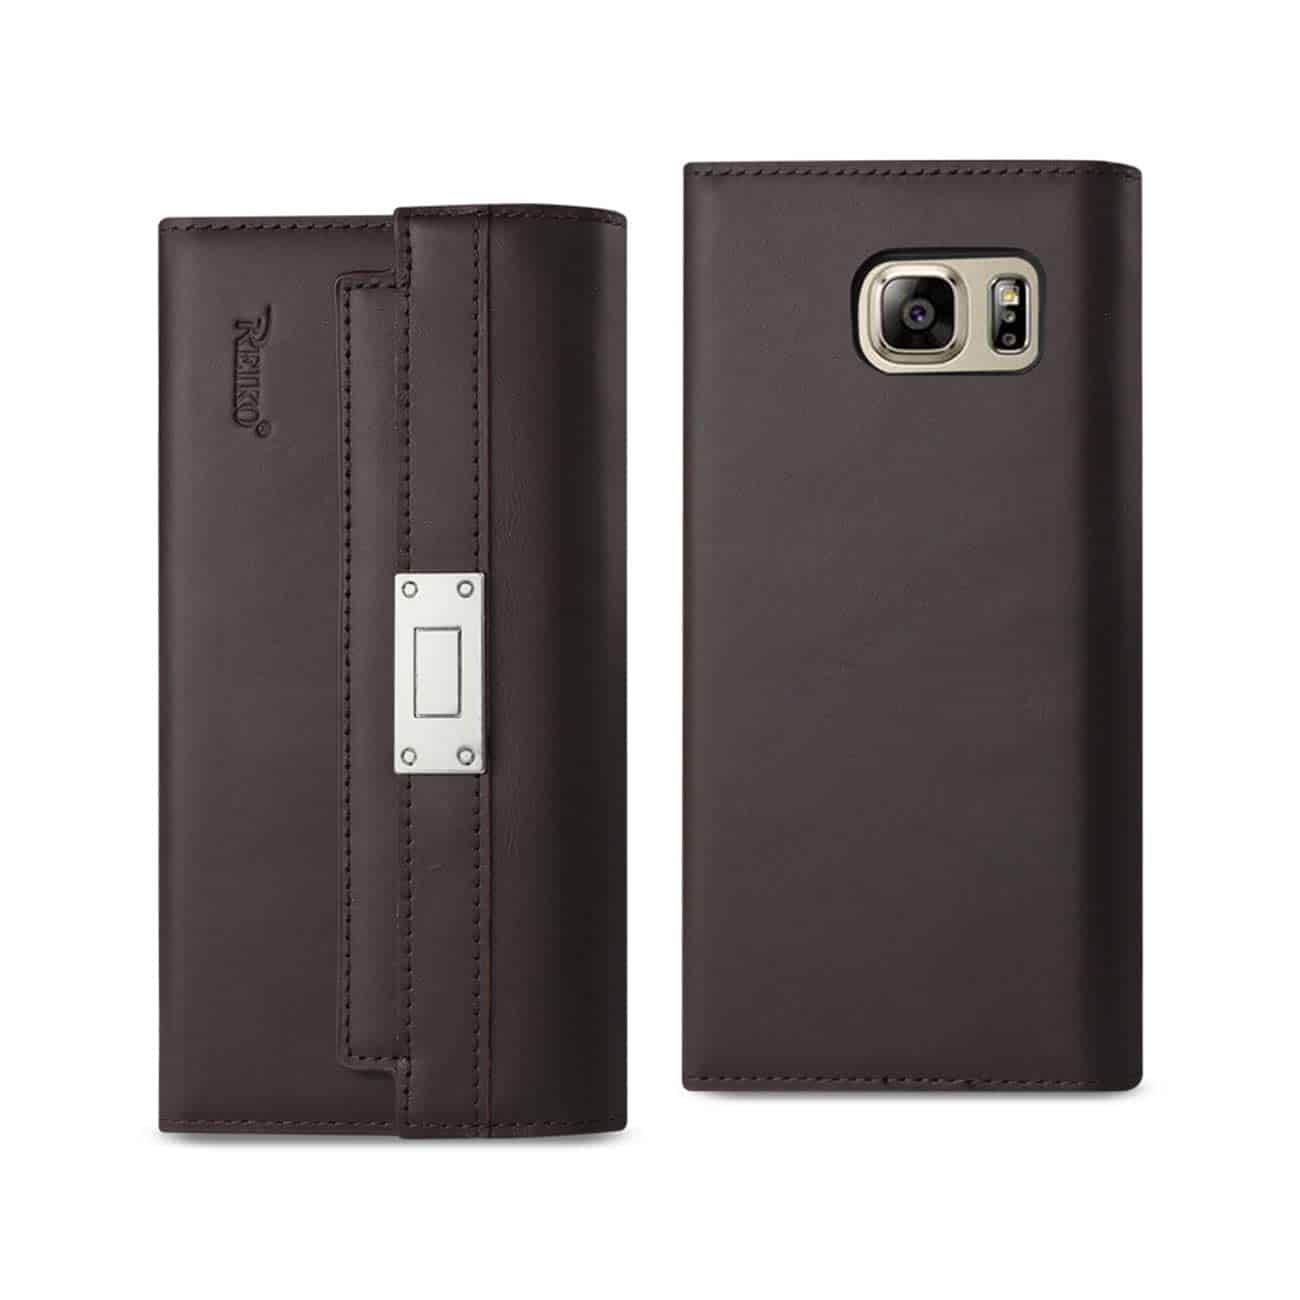 SAMSUNG GALAXY NOTE 5 GENUINE LEATHER RFID WALLET CASE AND METAL BUCKLE BELT IN UMBER